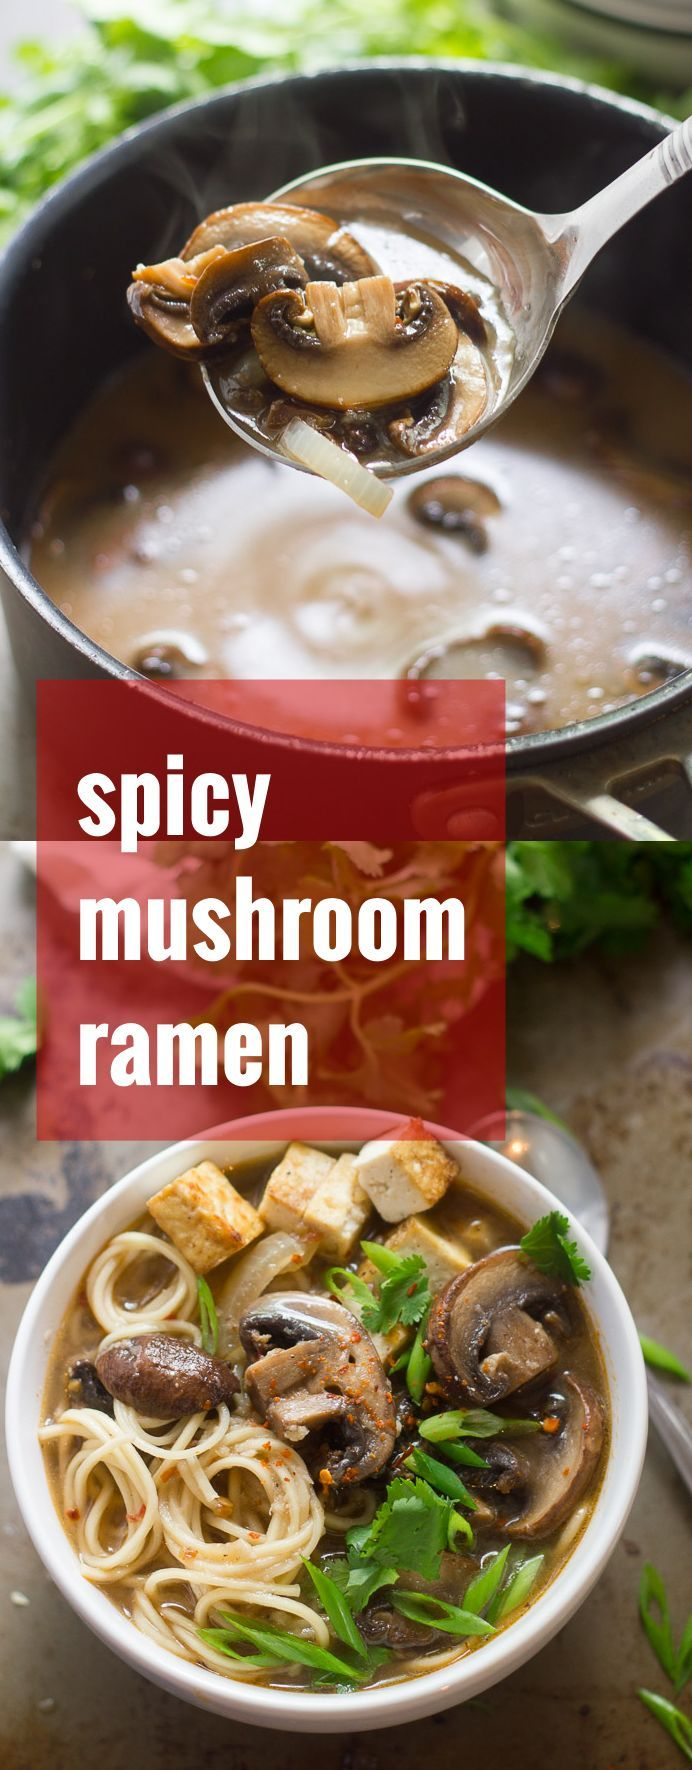 Baby portobello mushrooms are simmered in spicy miso broth and served over slurpable noodles to create this savory vegan mushroom ramen.